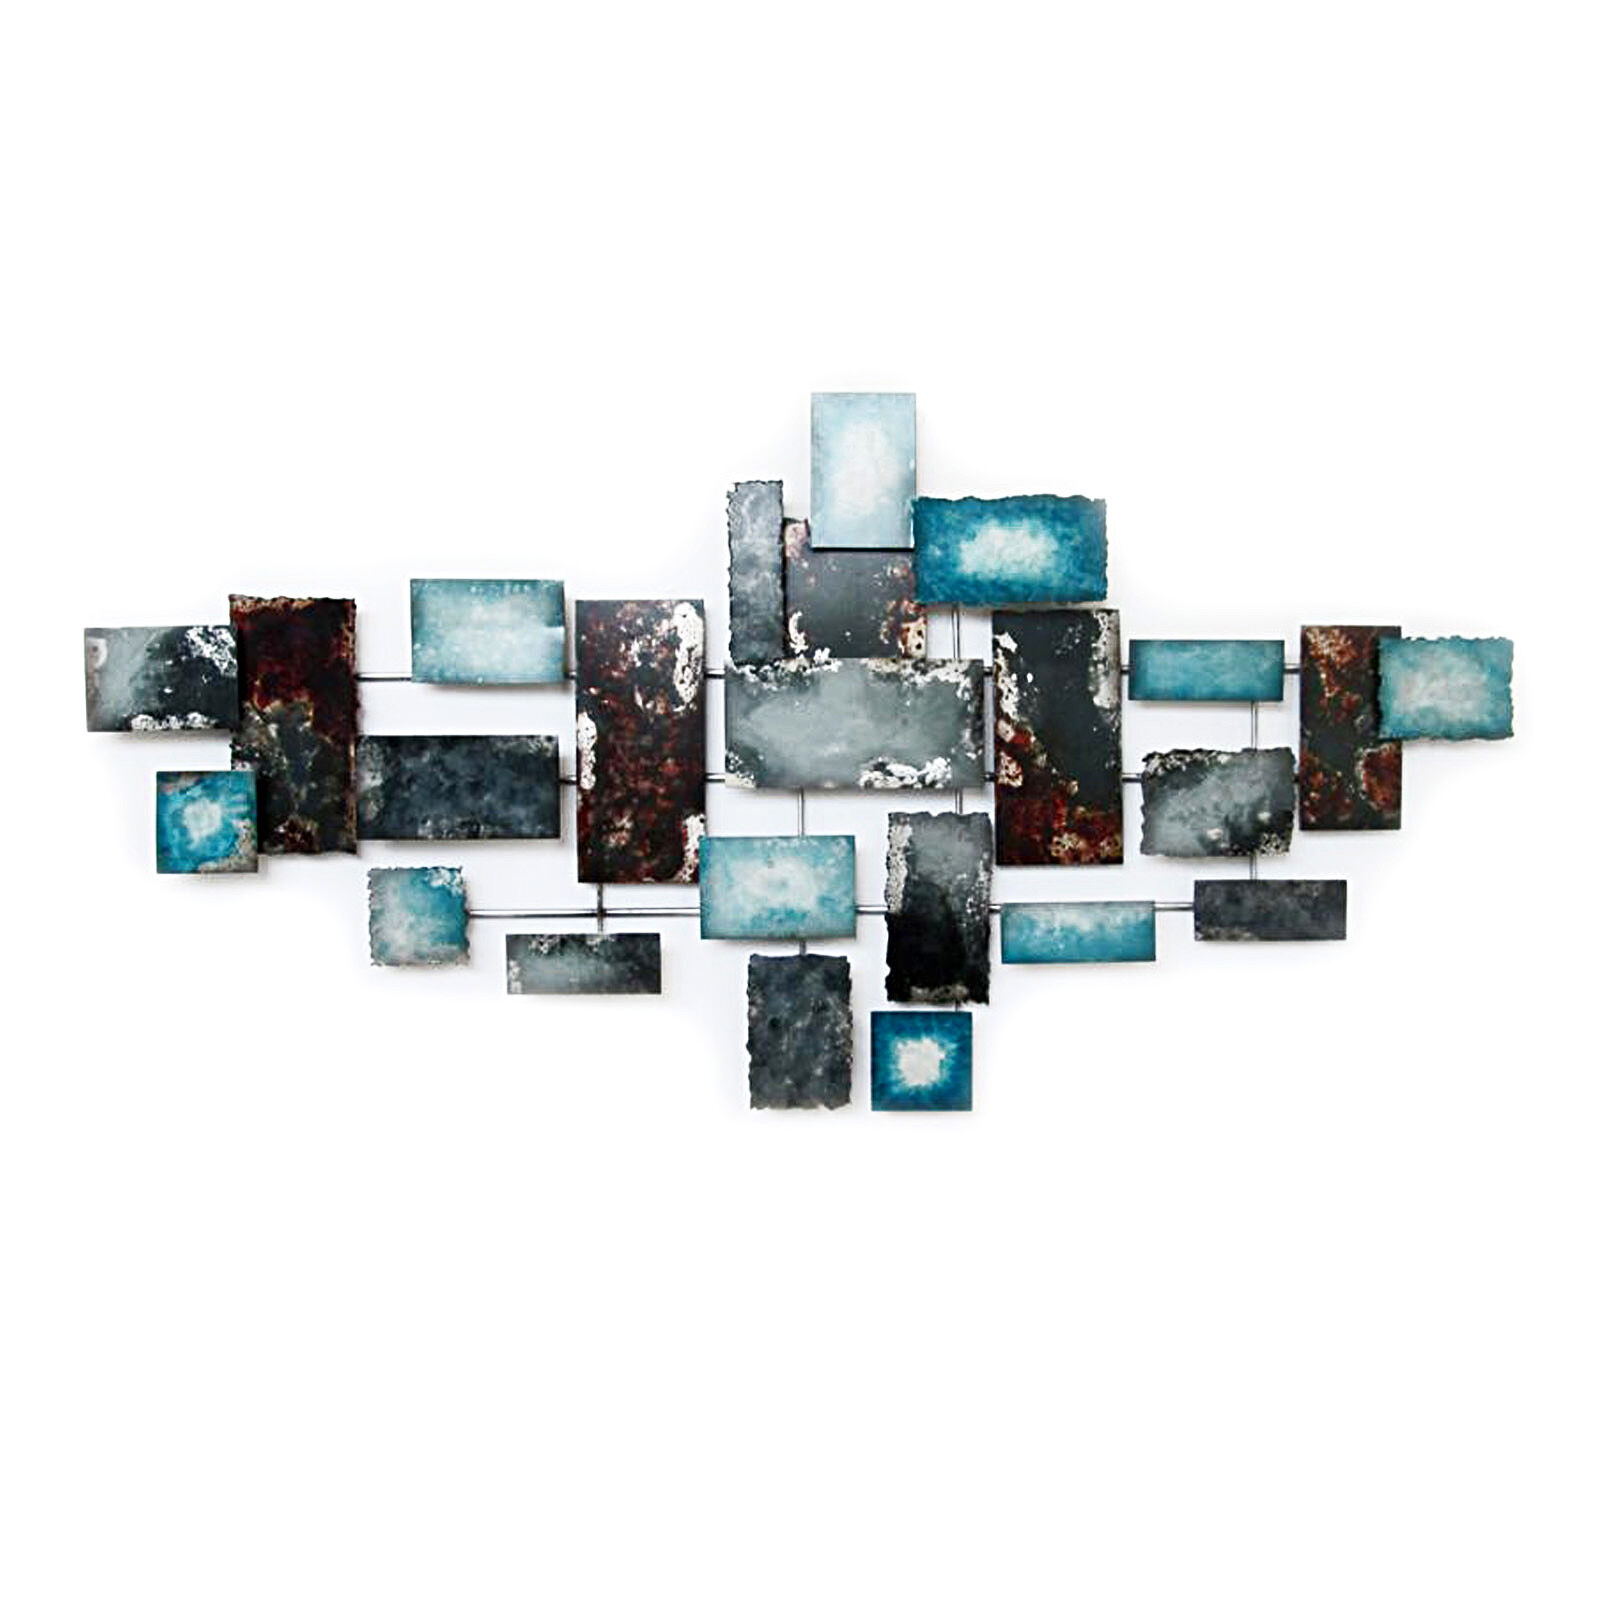 56 X 28 X 2-in Turquoise Gray Blue Wall Décor ...